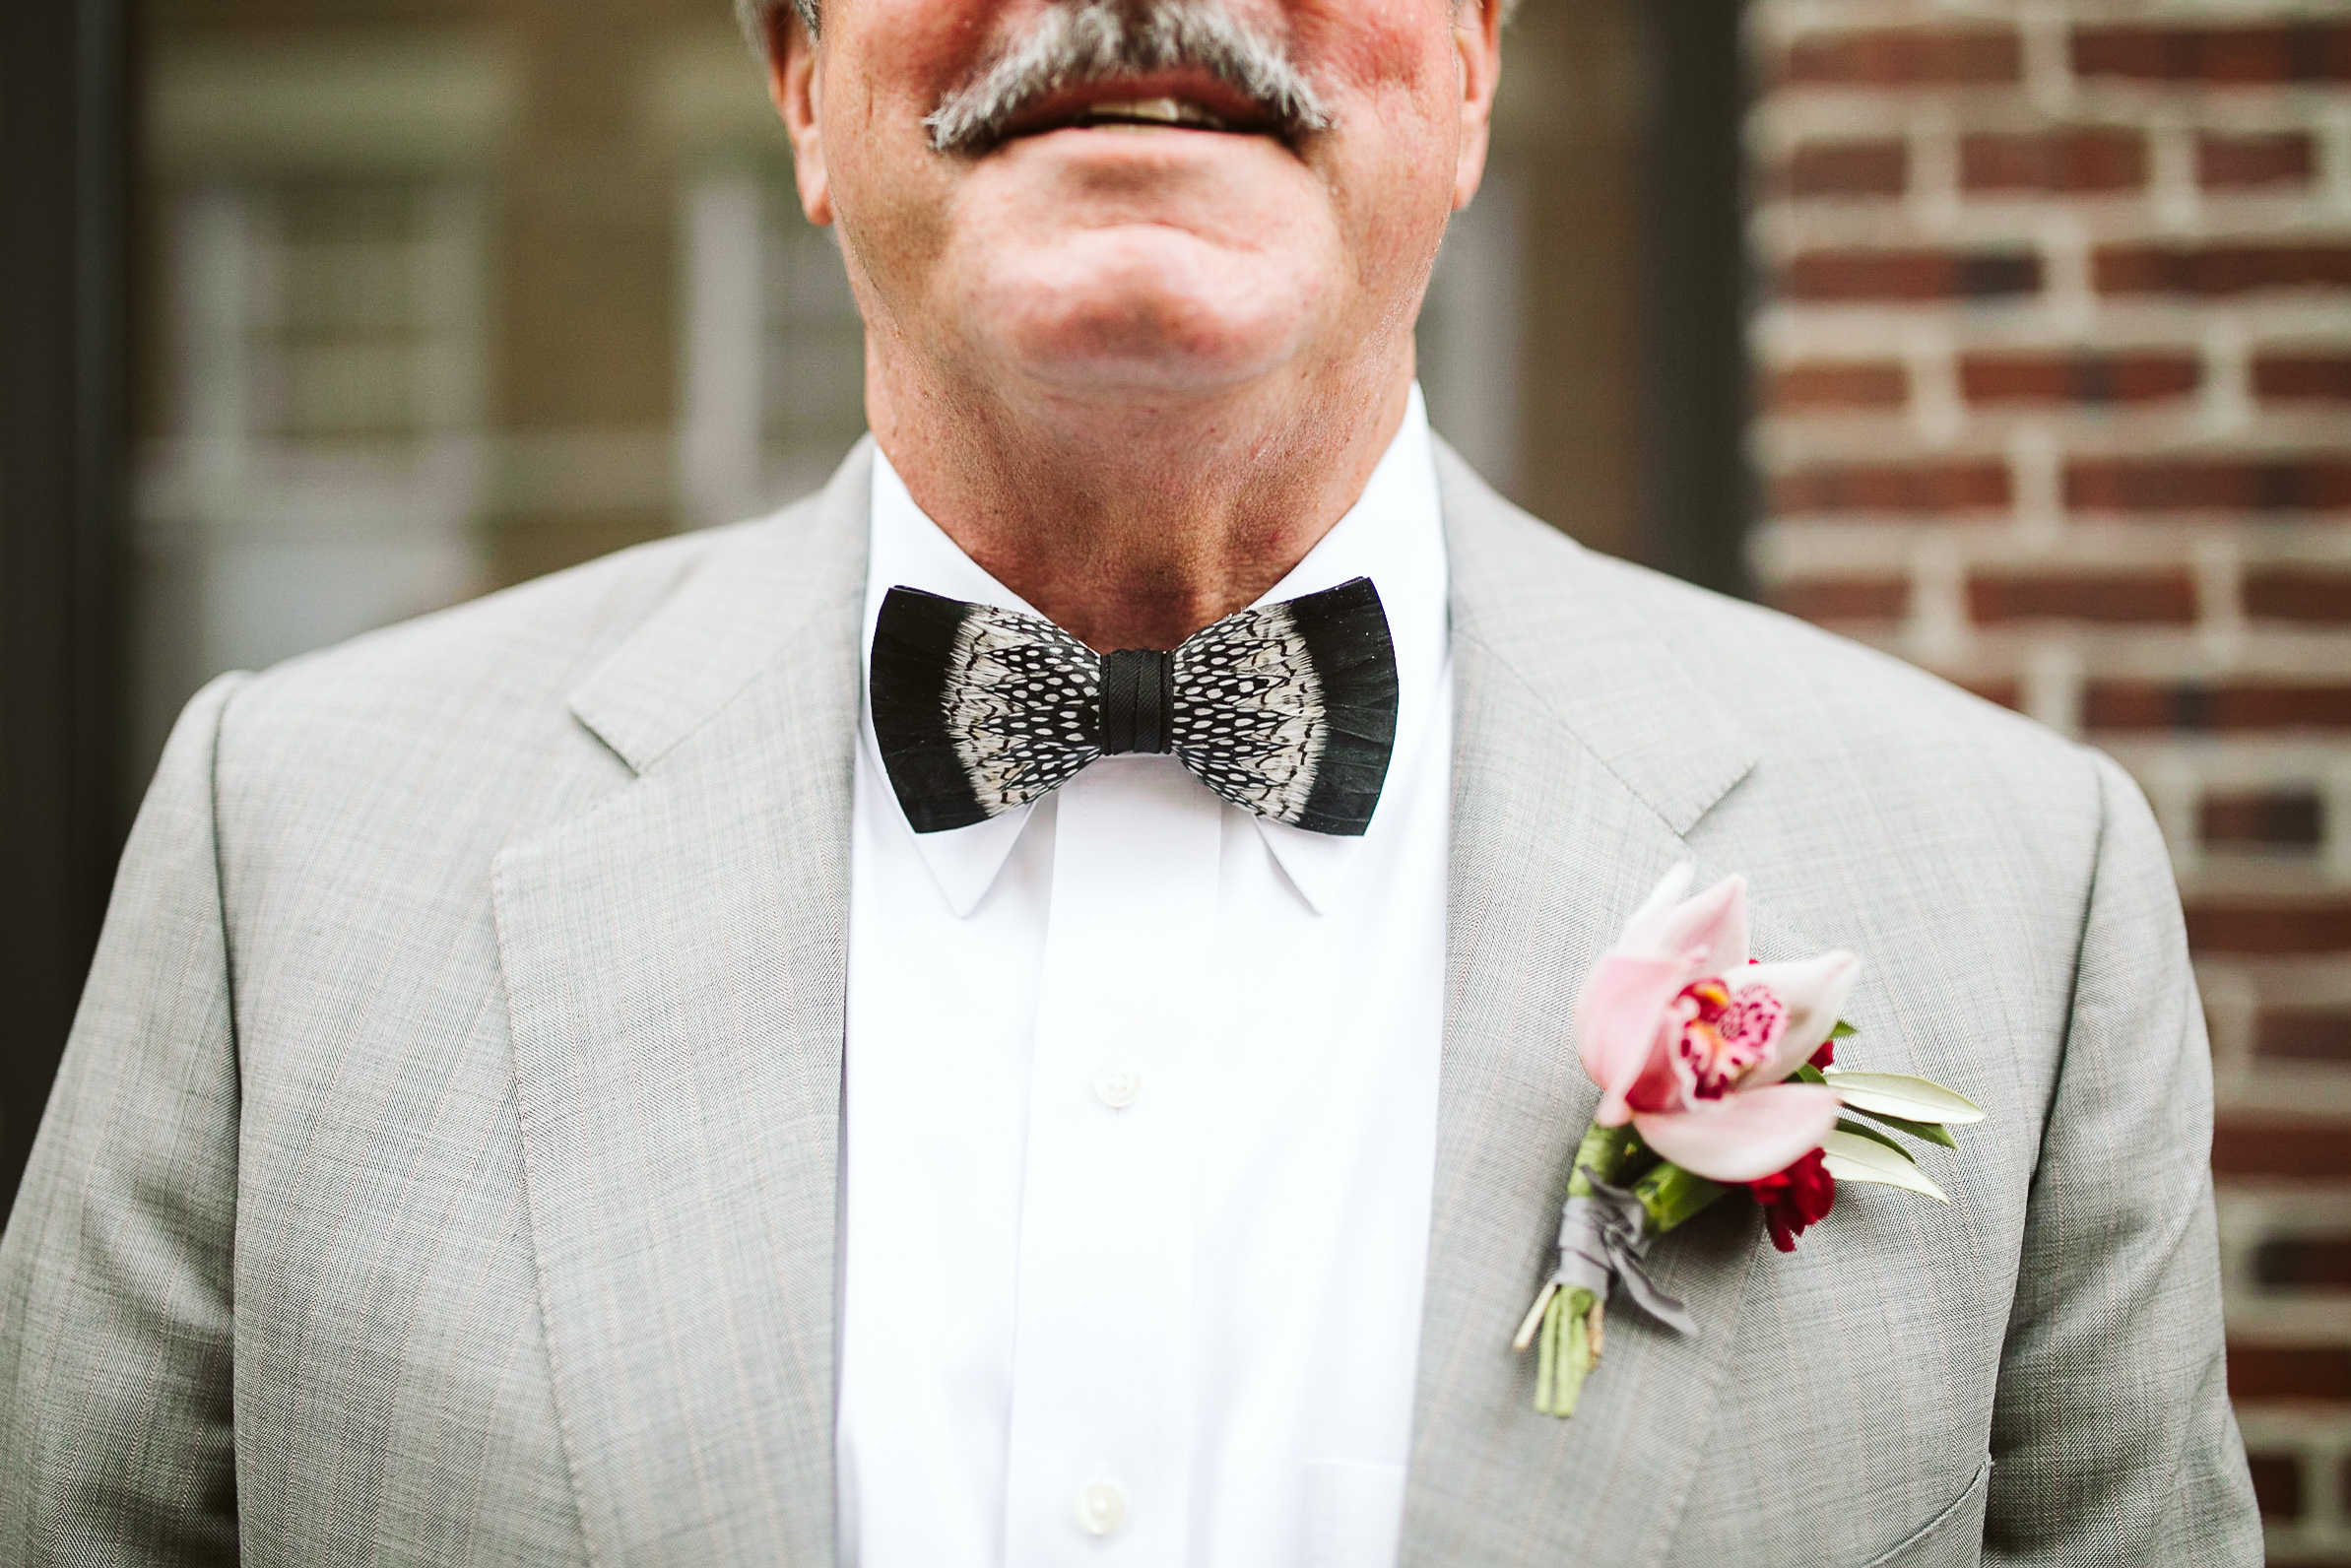 The father of the bride's details at this Battello Wedding in Jersey City, NJ